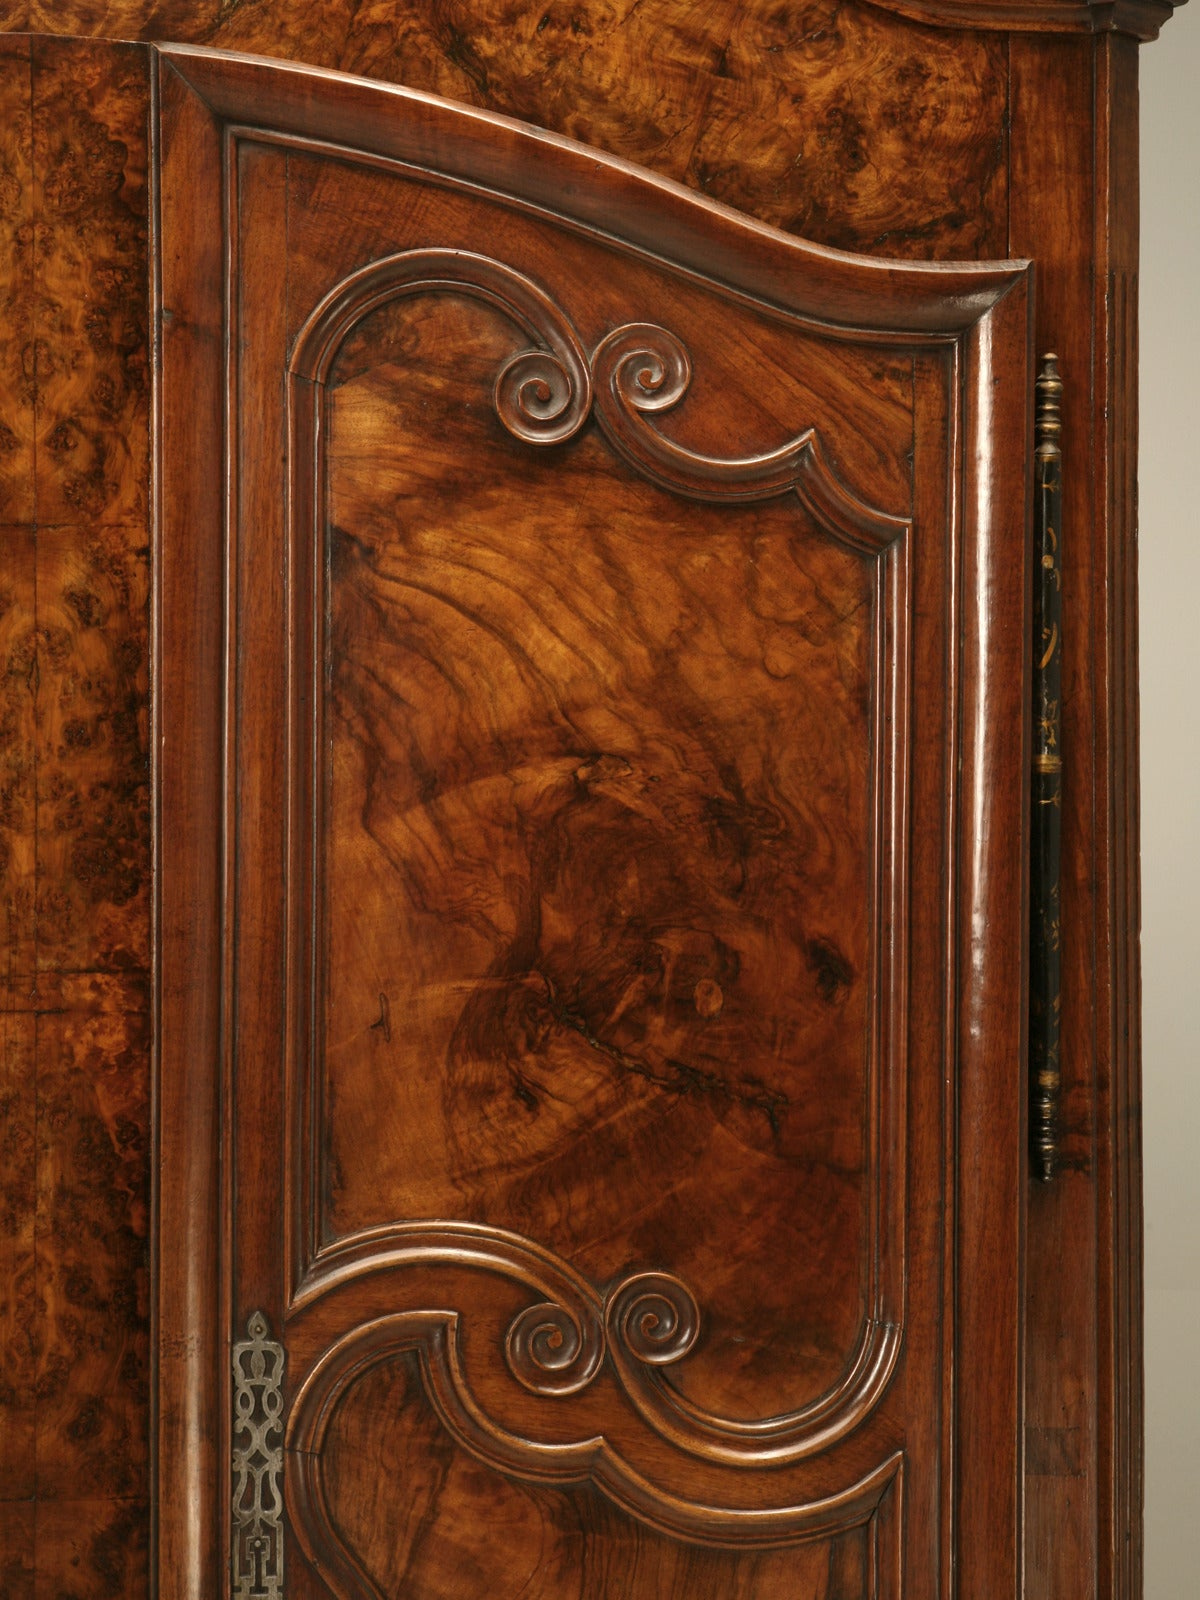 18th Century Armoire, French Burl Walnut in the Style of Louis XV Painted and Gilded Hinges